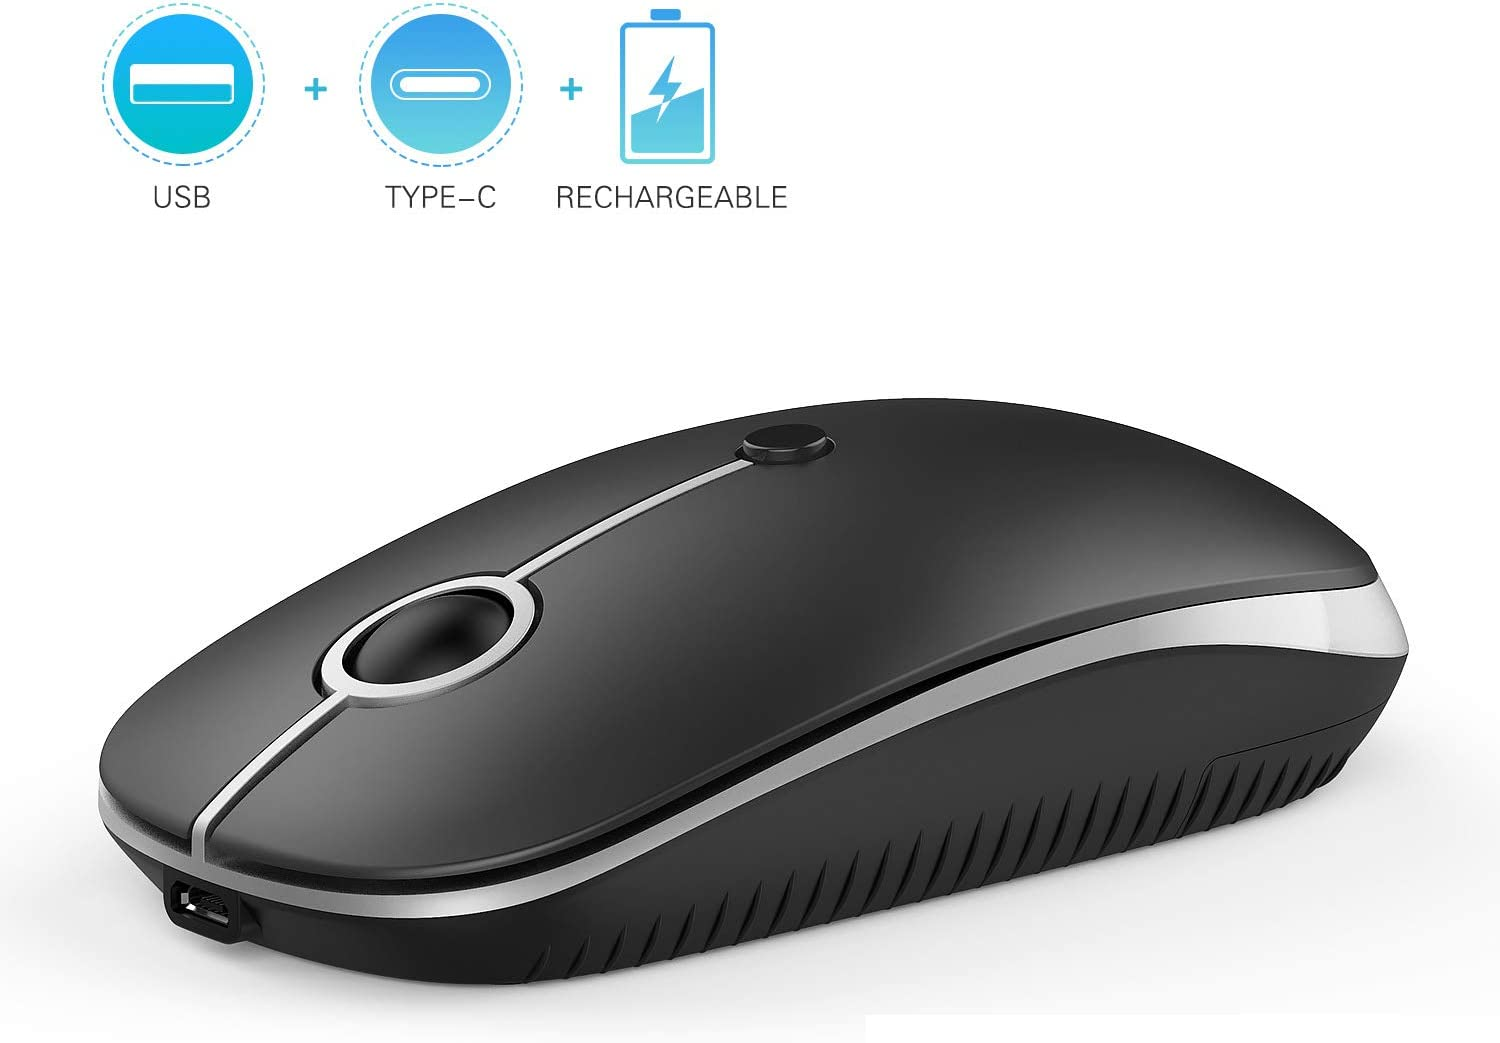 Type C Wireless Mouse, Jelly Comb Dual Mode 2.4Ghz Rechargeable Slim Wireless Mouse with Nano USB and Type C Receiver for PC Laptop, MacBook pro, MacBook air, iMac and More-MS05 (Black and Silver)